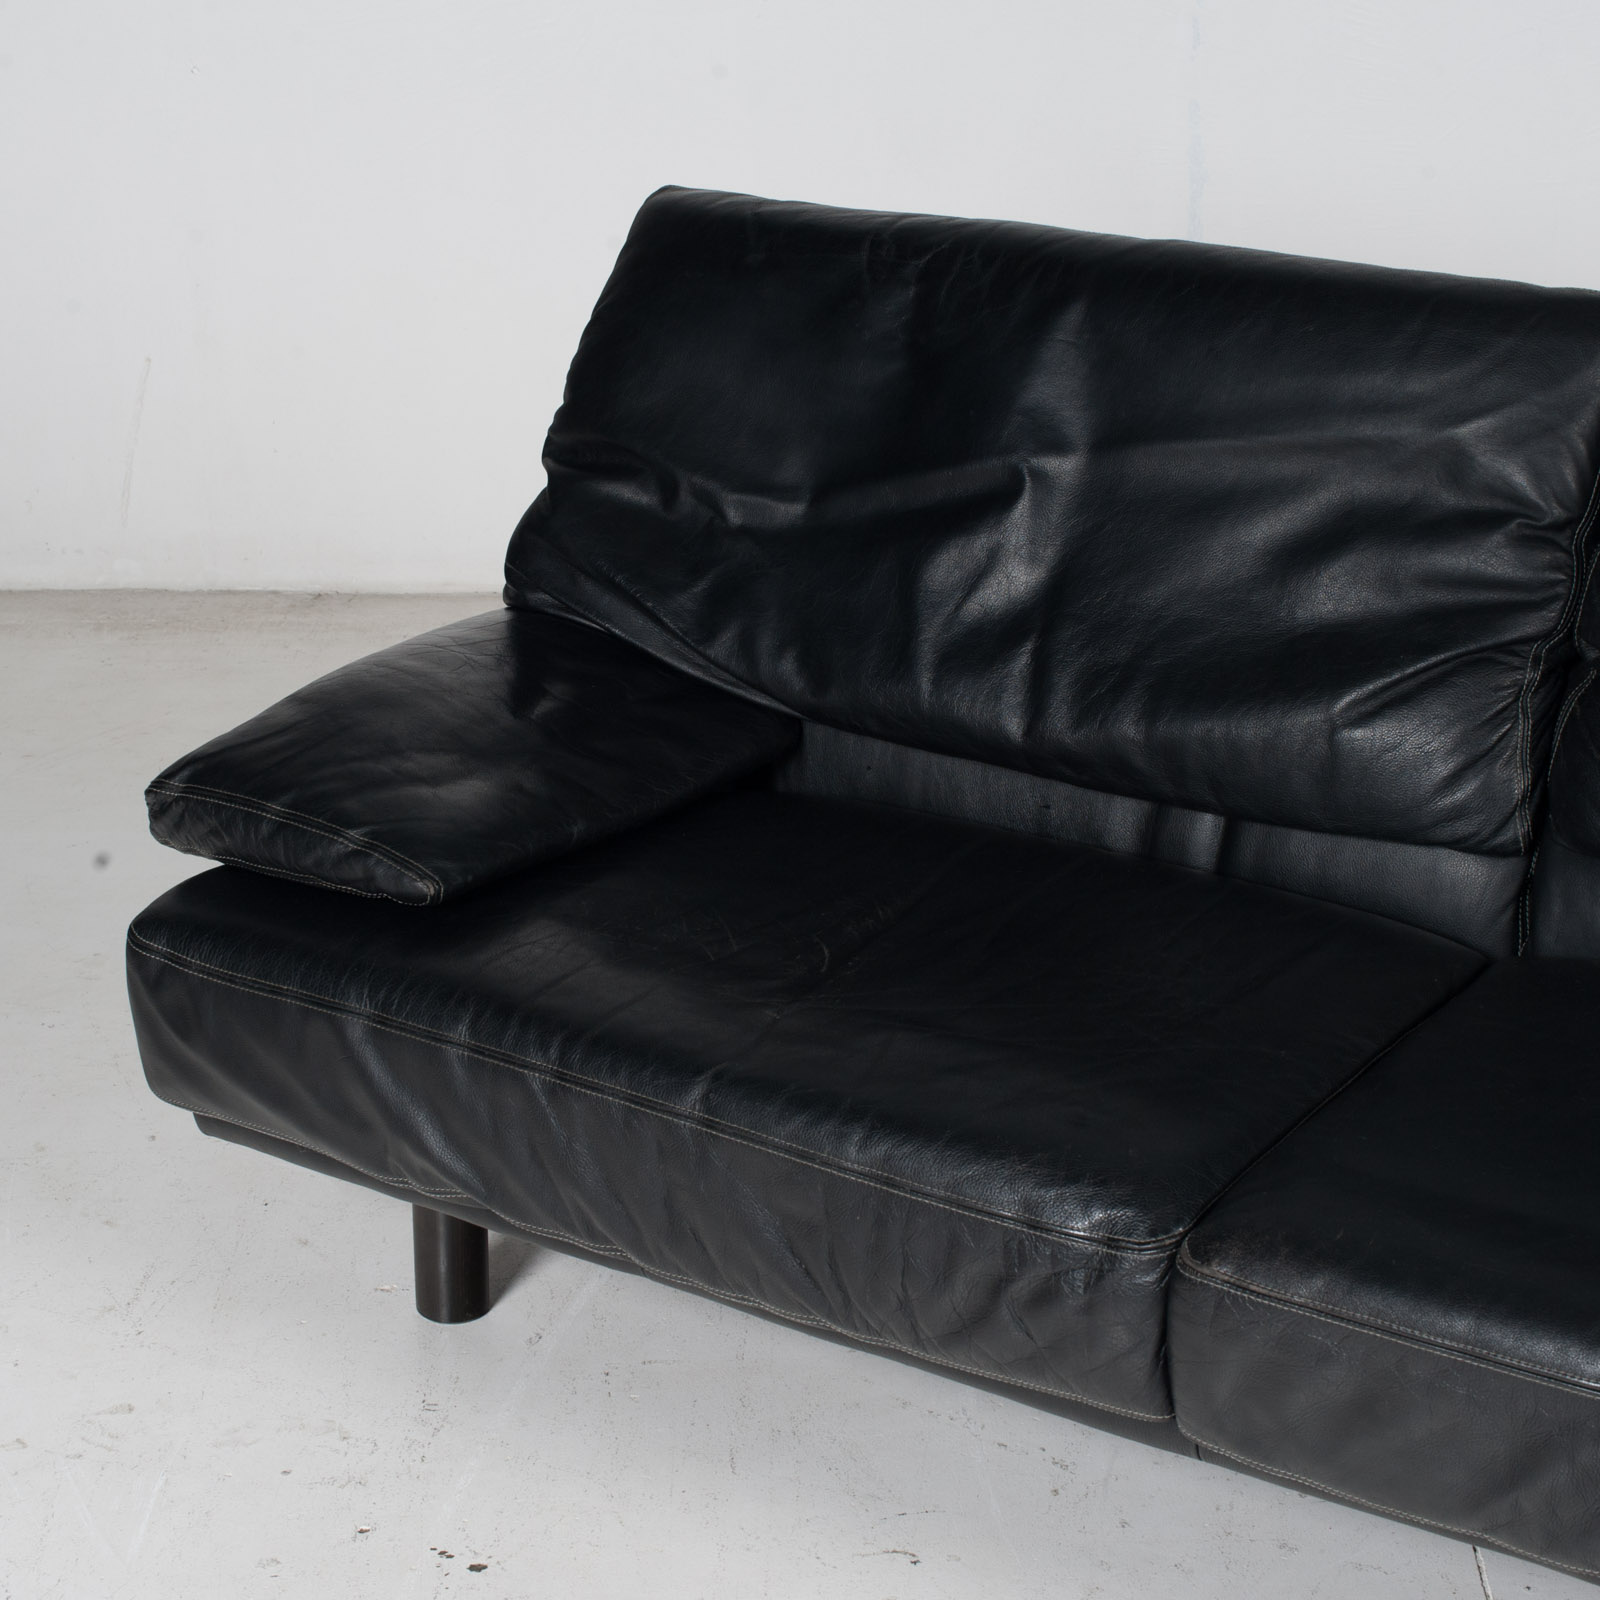 2 Seat Sofa In The Style Of Alanda By Paolo Piva For B&b Italia In Black Leather, 1980s, Italy It 6